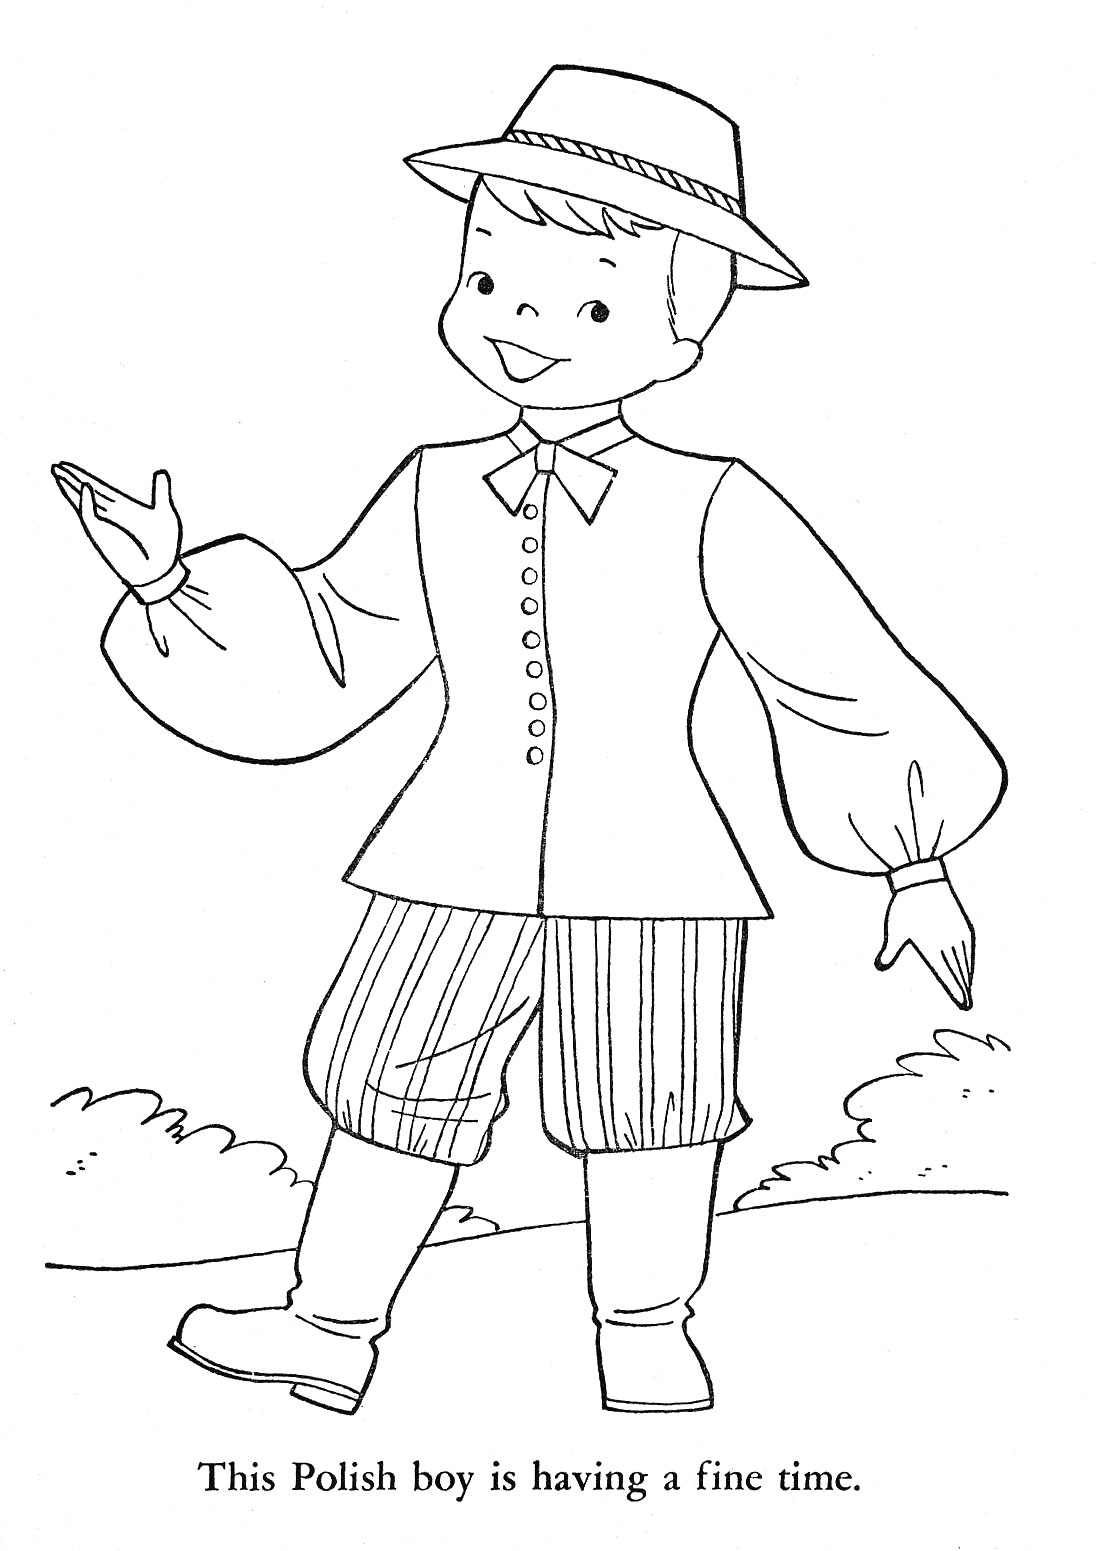 nail polish coloring pages for kids - photo #35